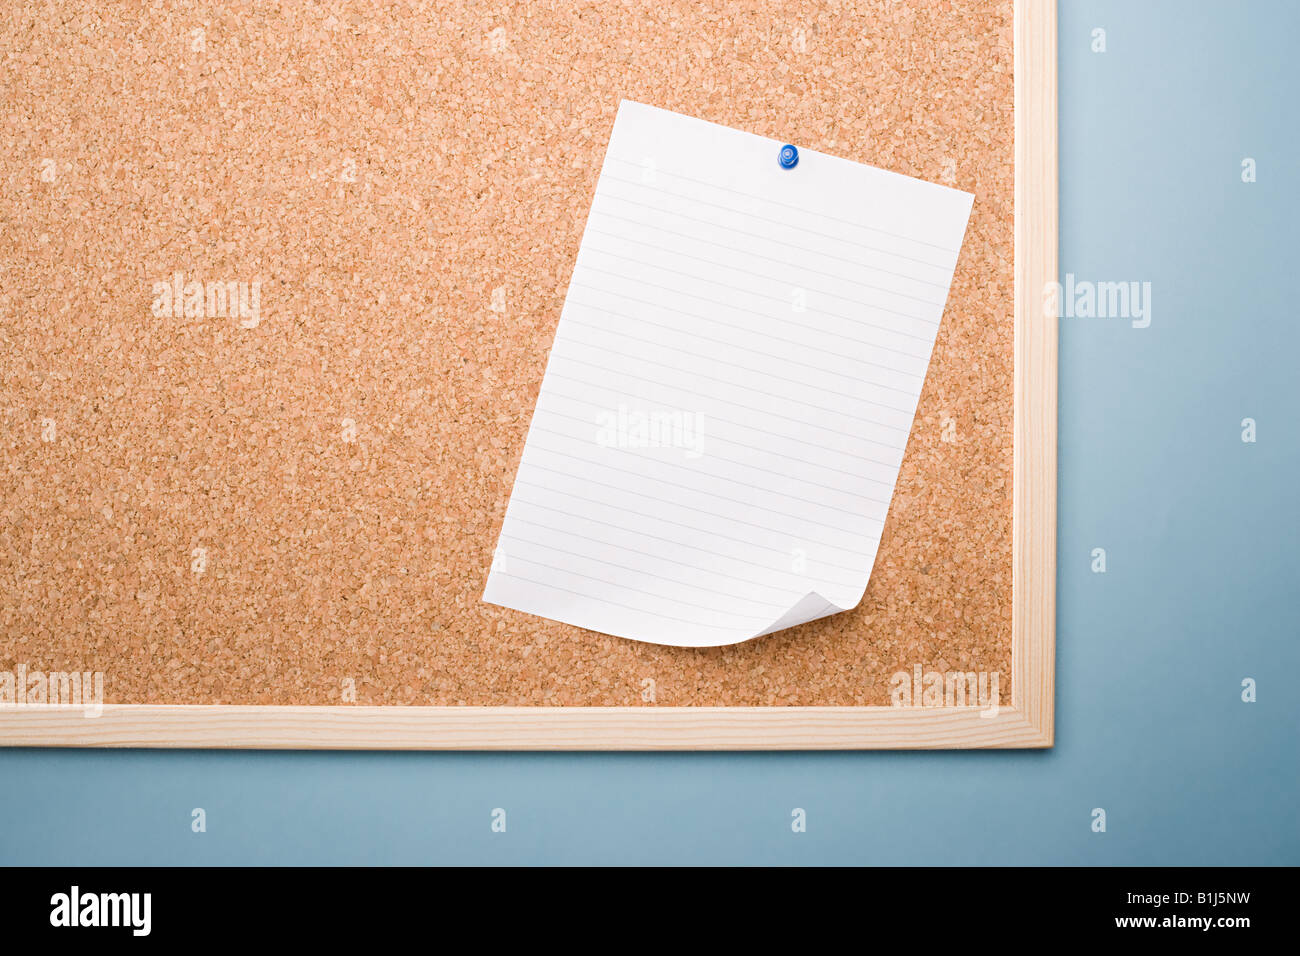 Paper on a noticeboard - Stock Image